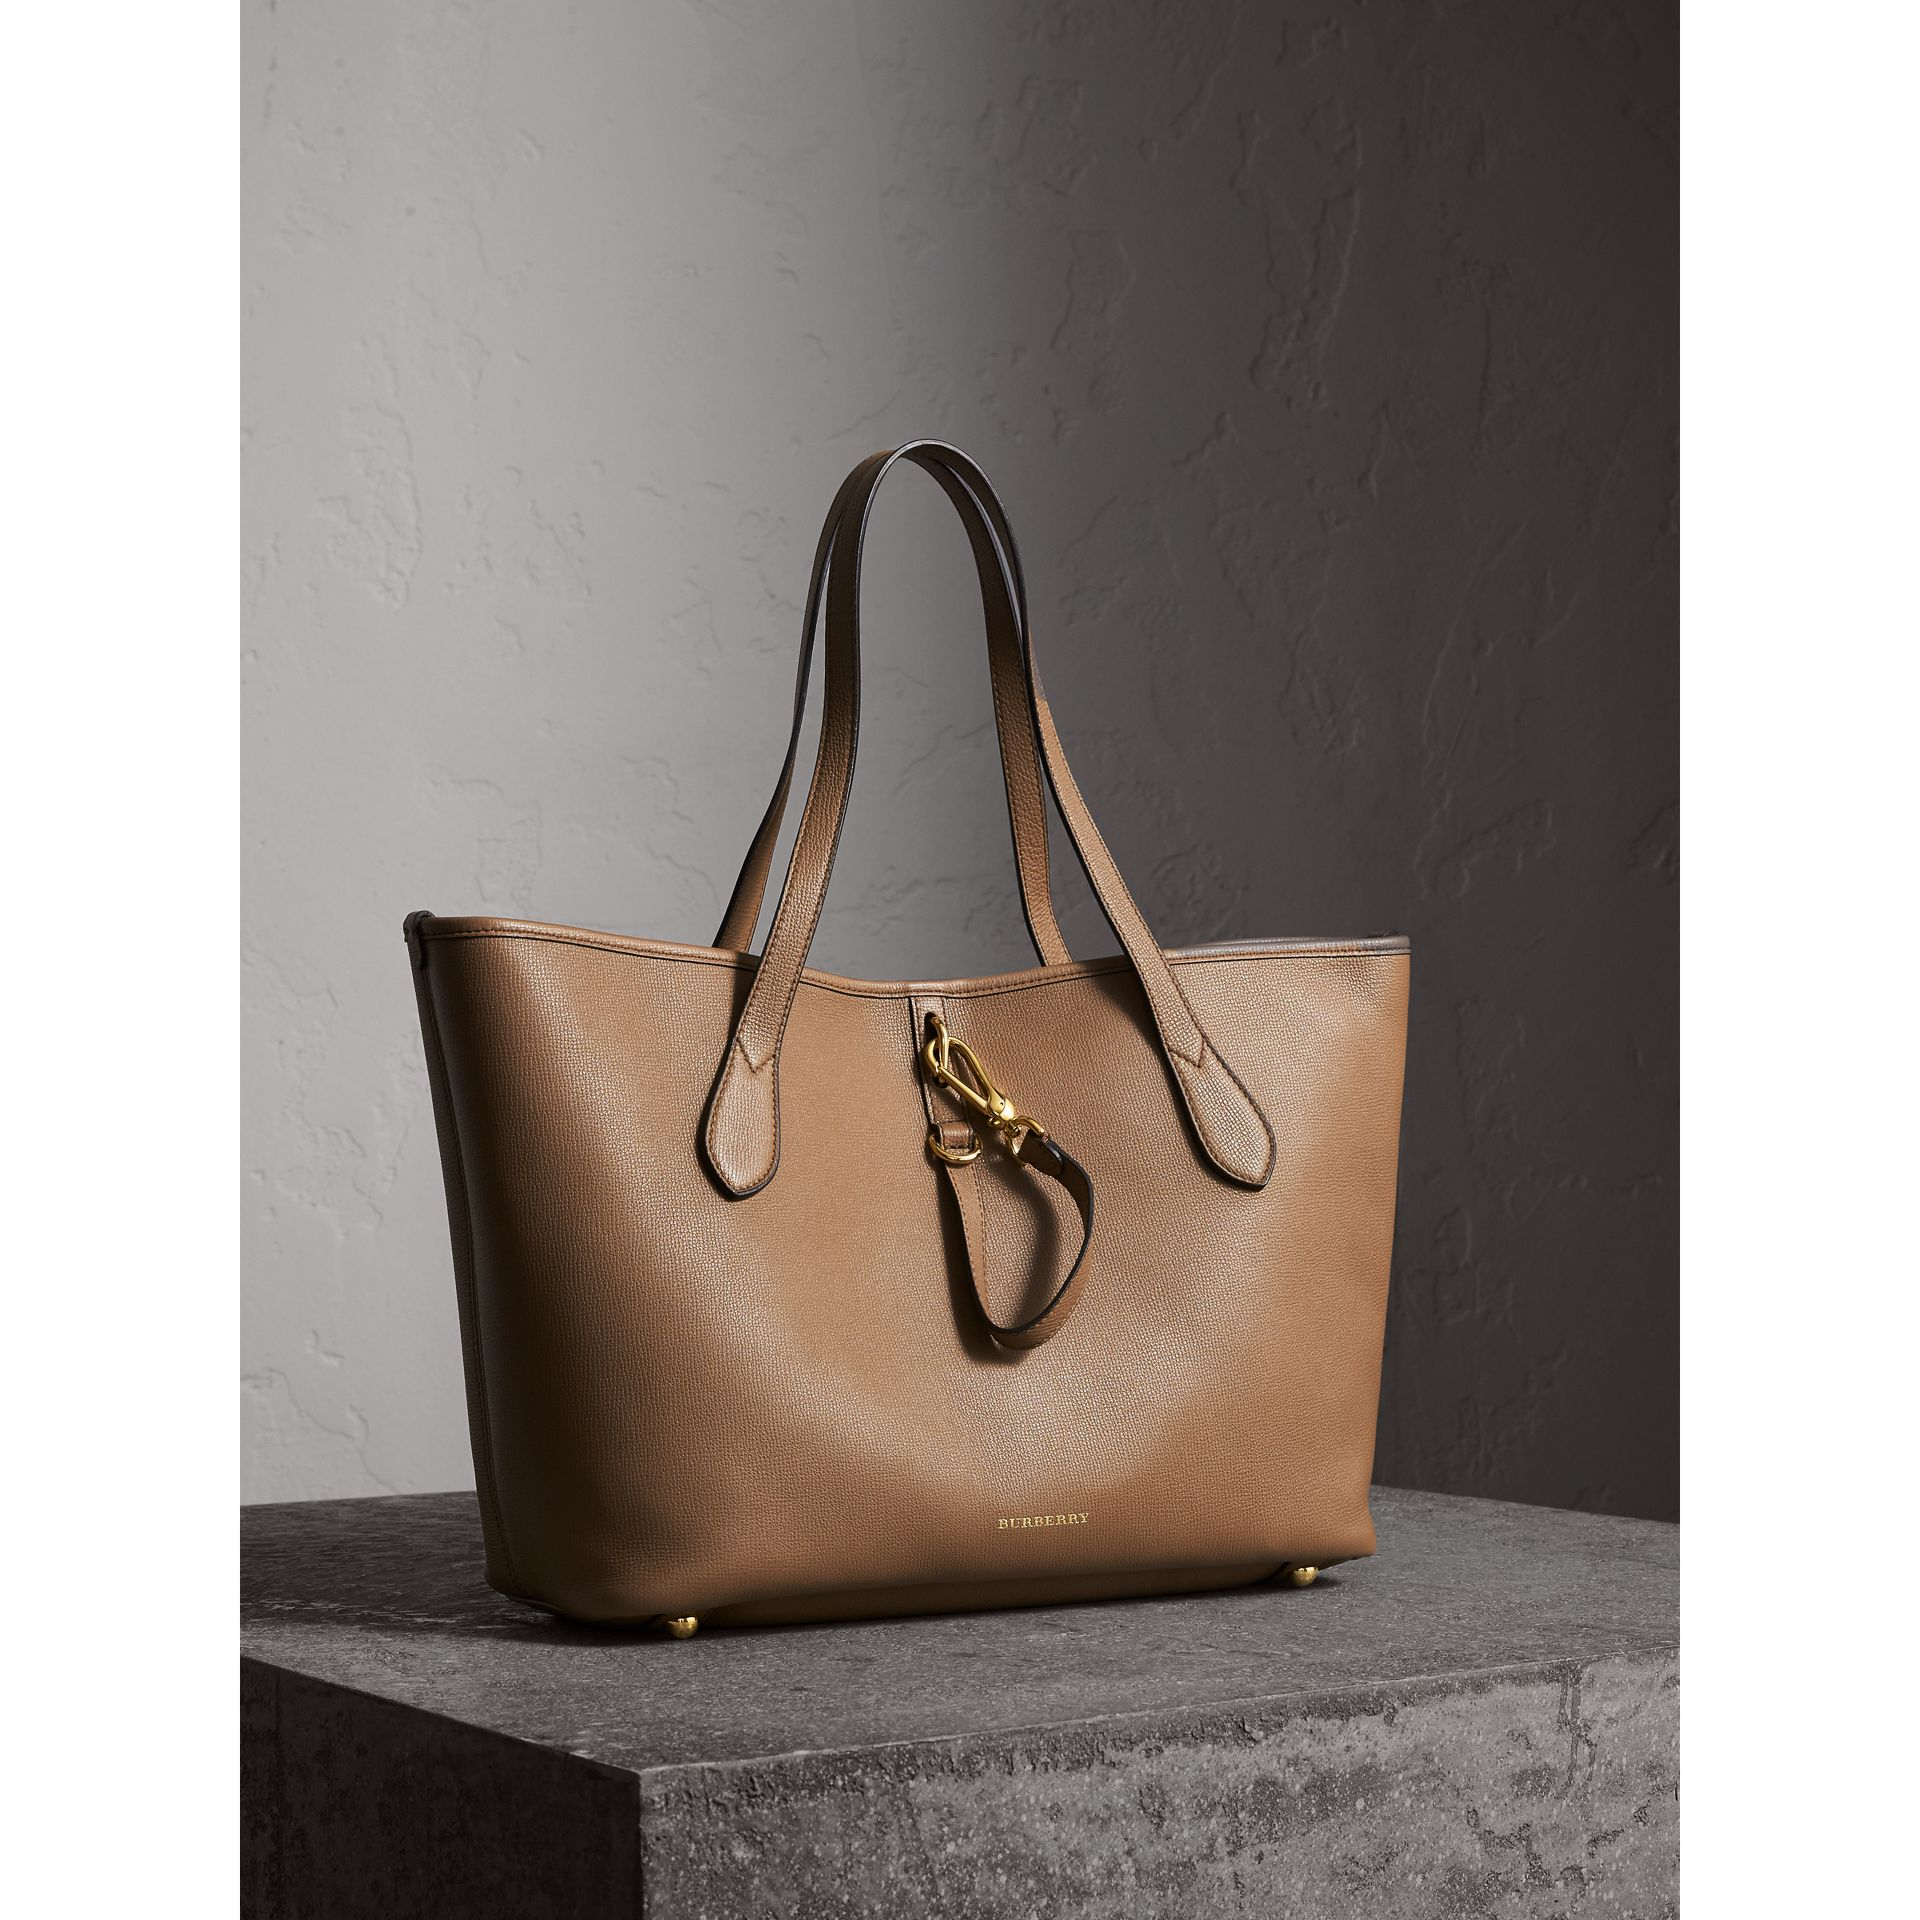 Medium Grainy Leather Tote Bag in Dark Sand - Women | Burberry United States - gallery image 7